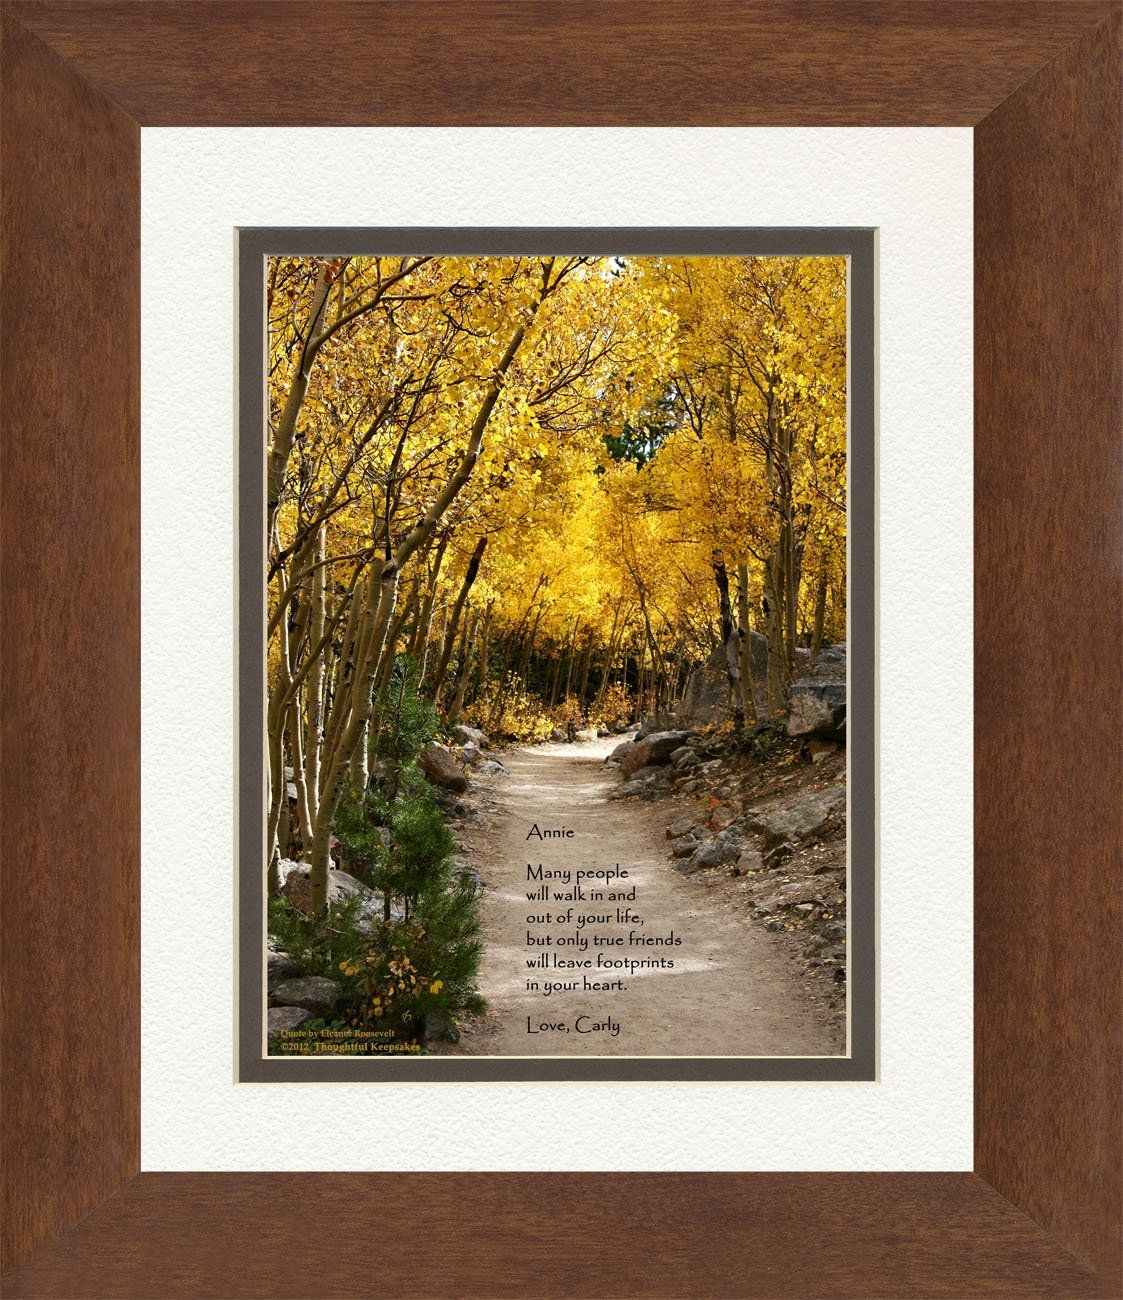 Framed Personalized Friend Gift. Aspen Path Photo with